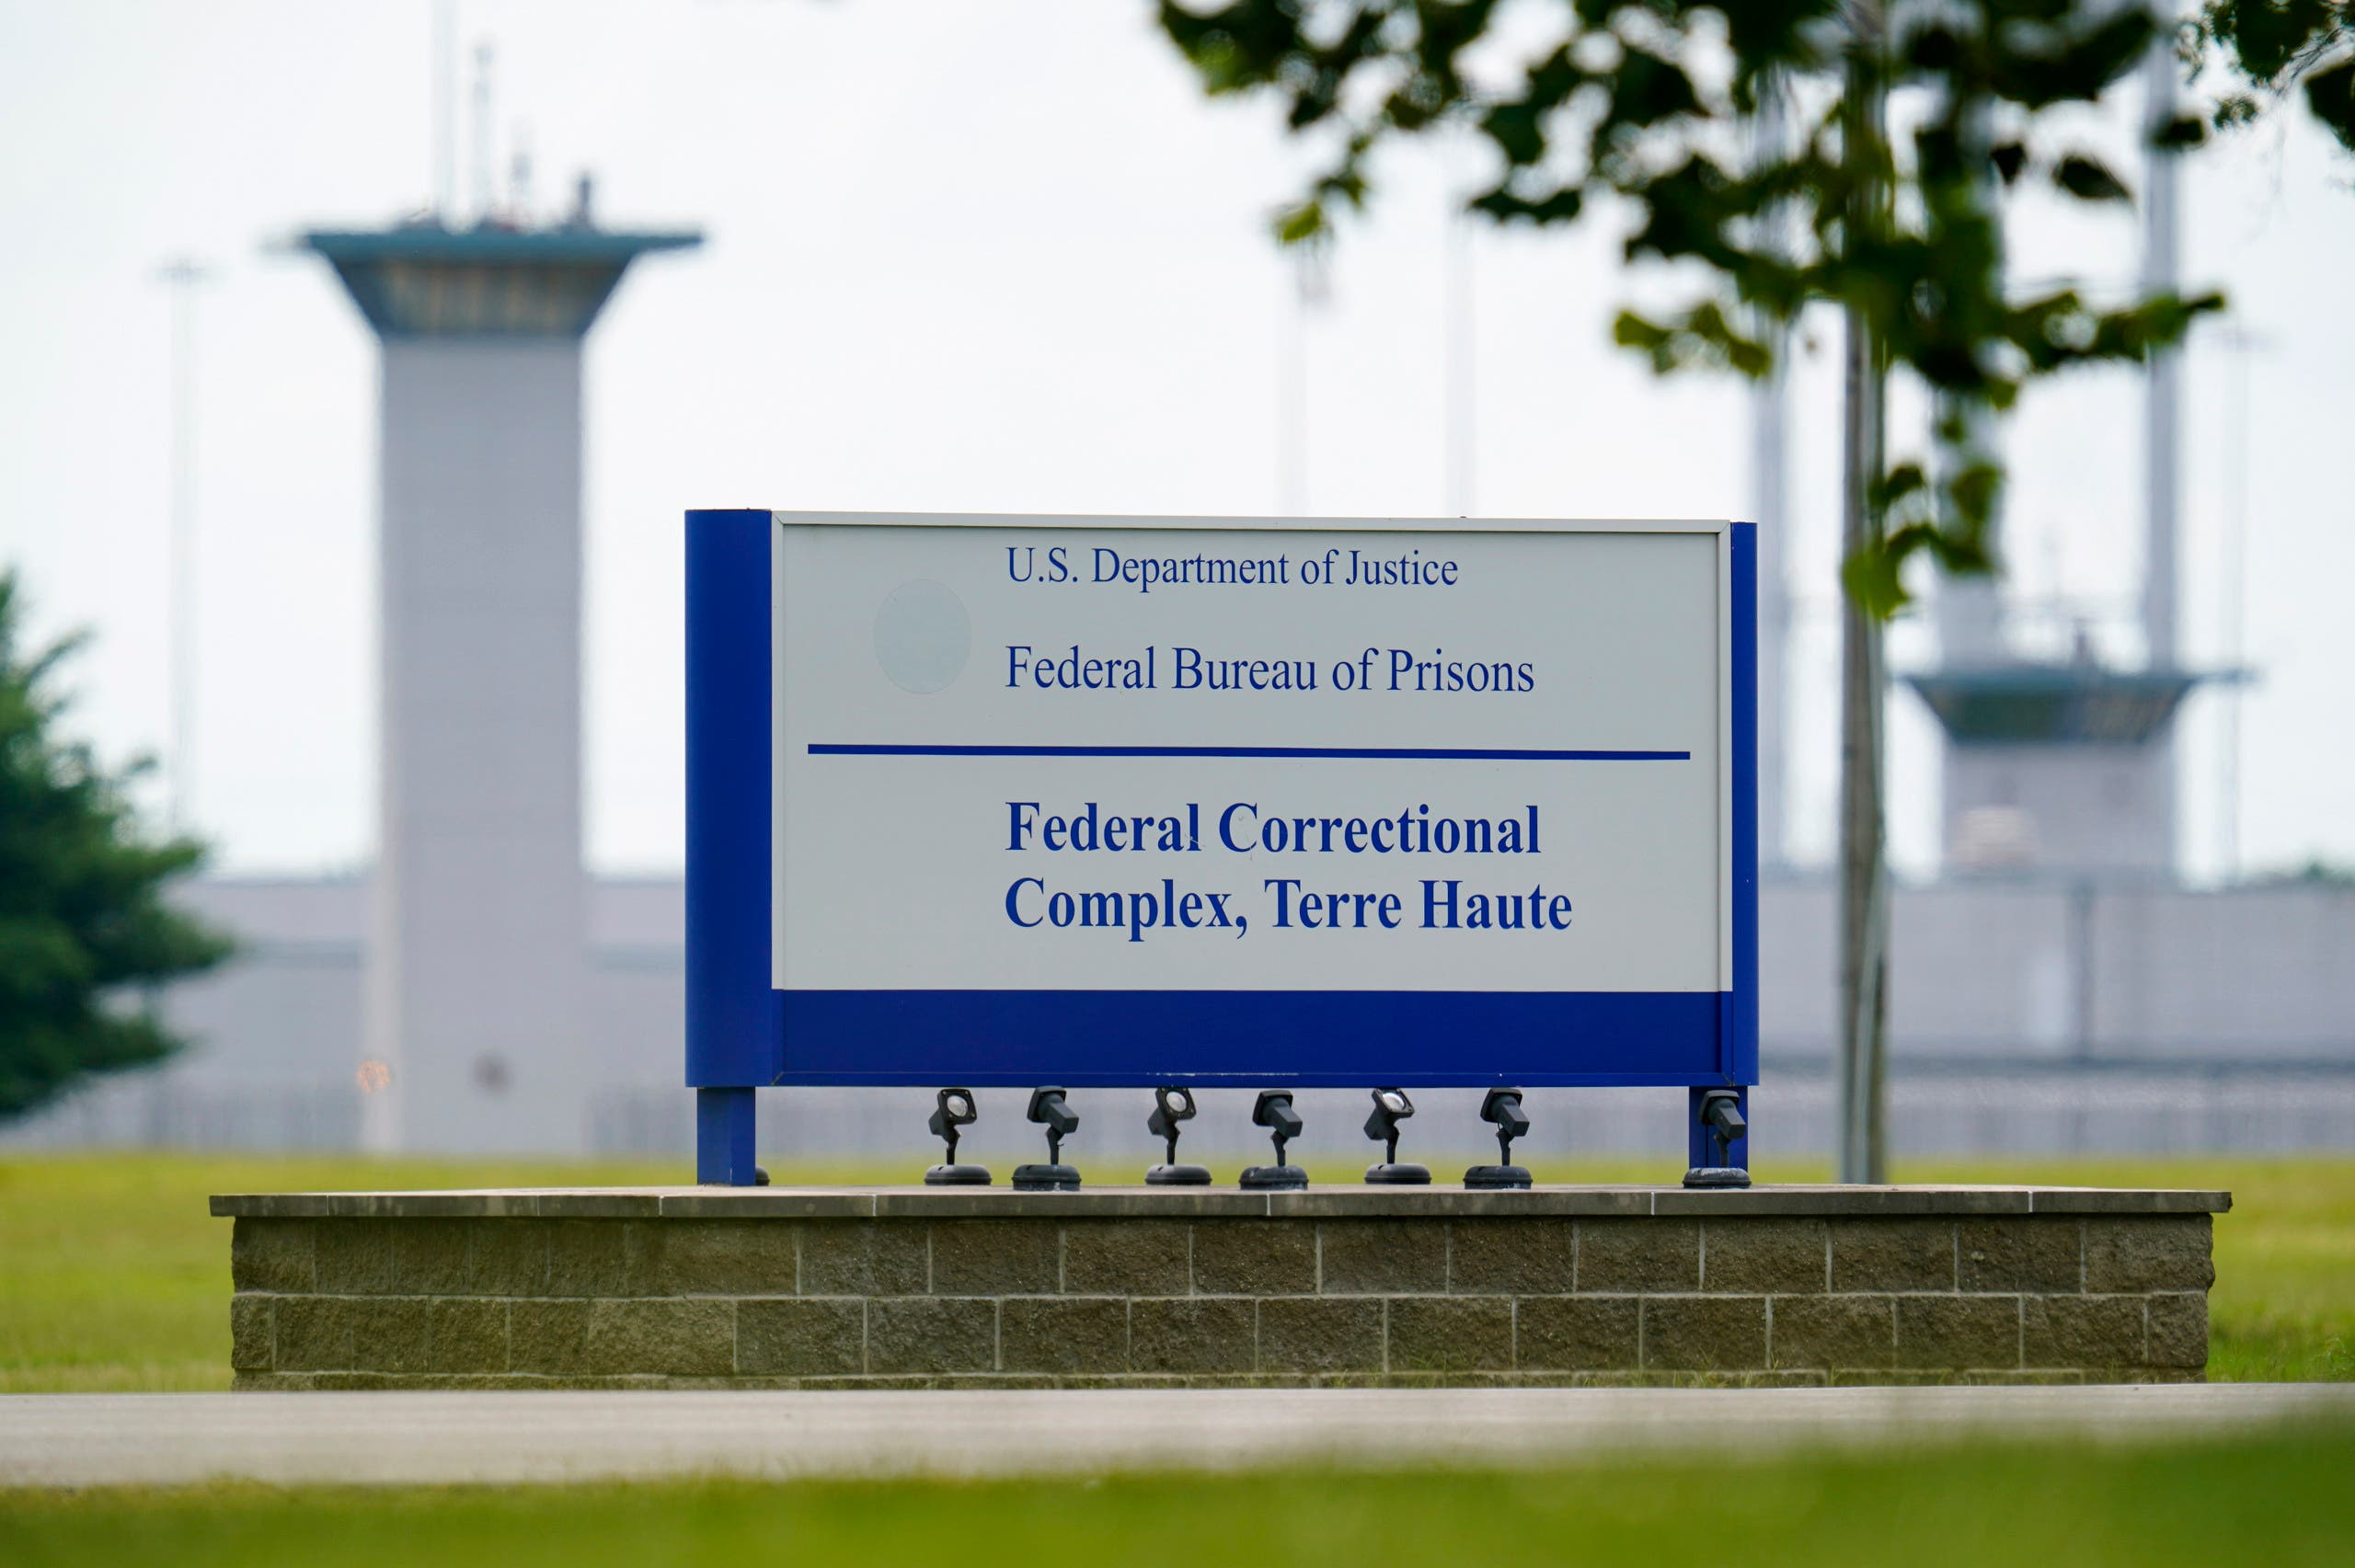 Federal prison complex in Terre Haute, Ind where Lisa Montgomery was scheduled to be executed by lethal injection. (File photo: AP)